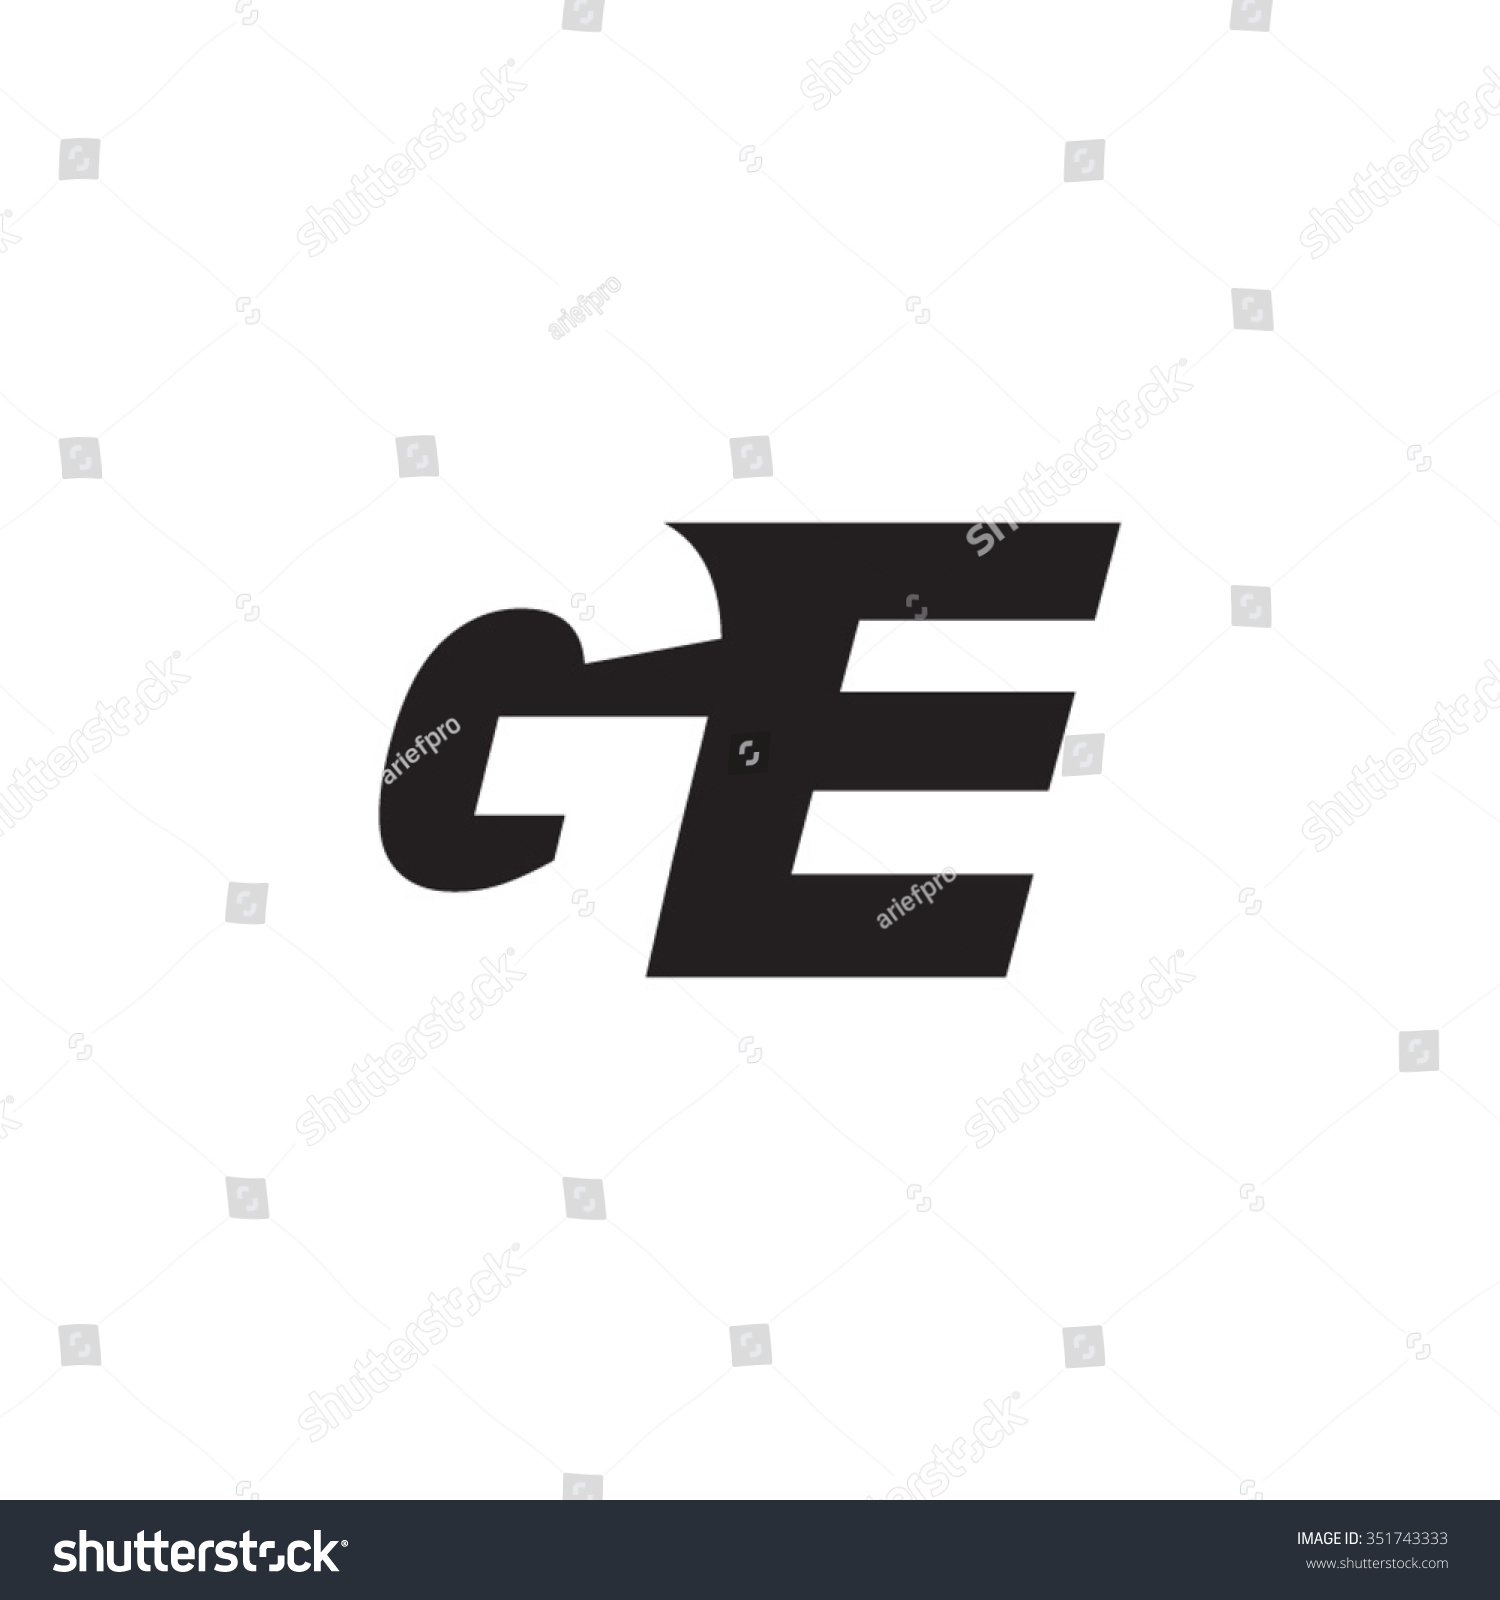 Ge negative space letter logo stock vector 351743333 shutterstock ge negative space letter logo biocorpaavc Gallery